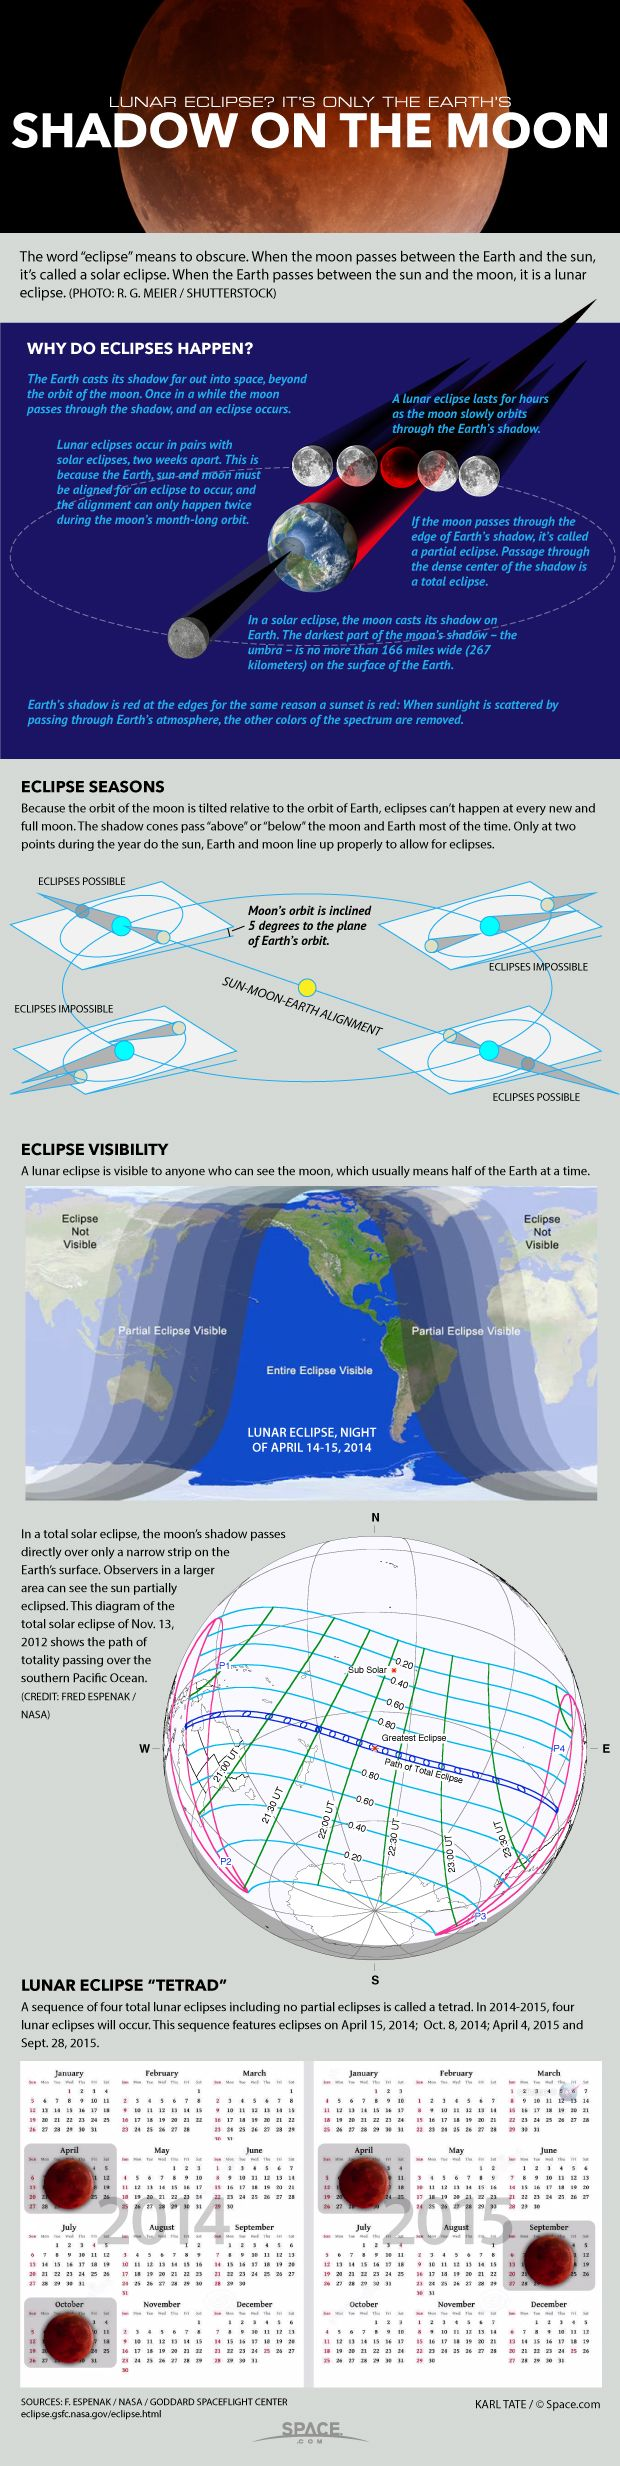 'Blood Moons' Explained: What Causes a Lunar Eclipse Tetrad? (Infographic) by Karl Tate, SPACE.com Infographics Artist : A series of four total lunar eclipses in a row is called a tetrad, or four Blood Moons. See how lunar eclipse tetrads work in this Space.com infographic.